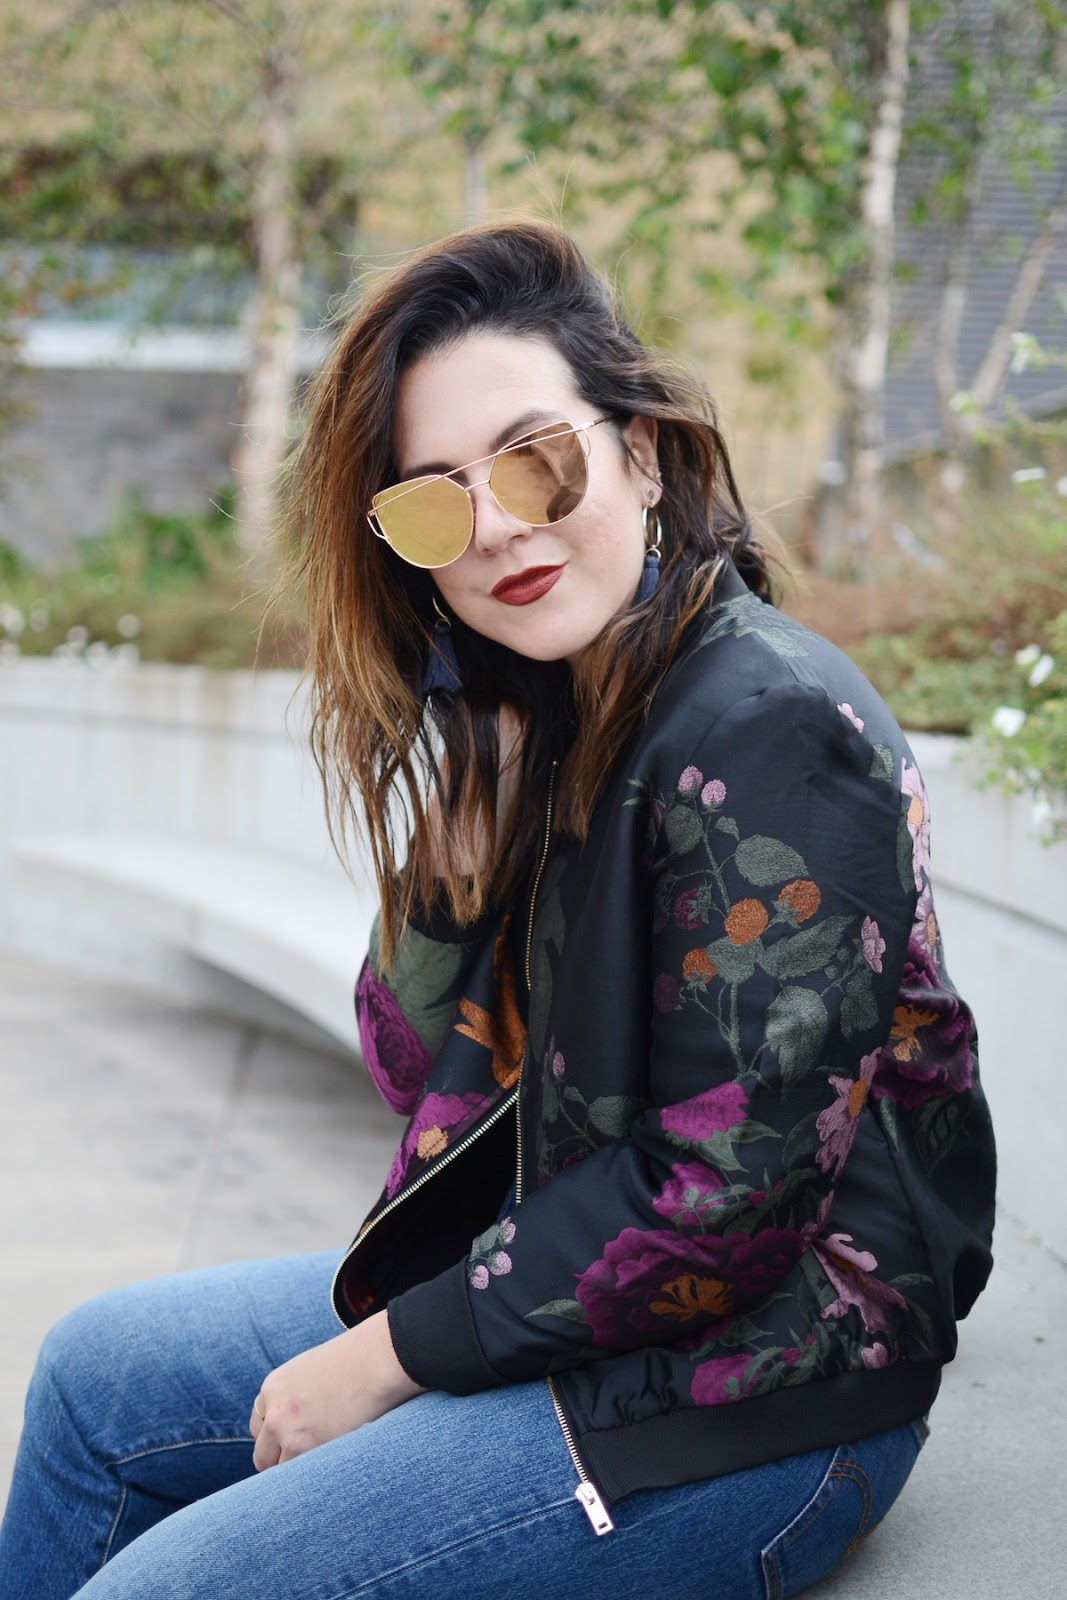 Le Chateau embroidered bomber jacket levis wedgie jeans vancouver fashion blogger aleesha harris